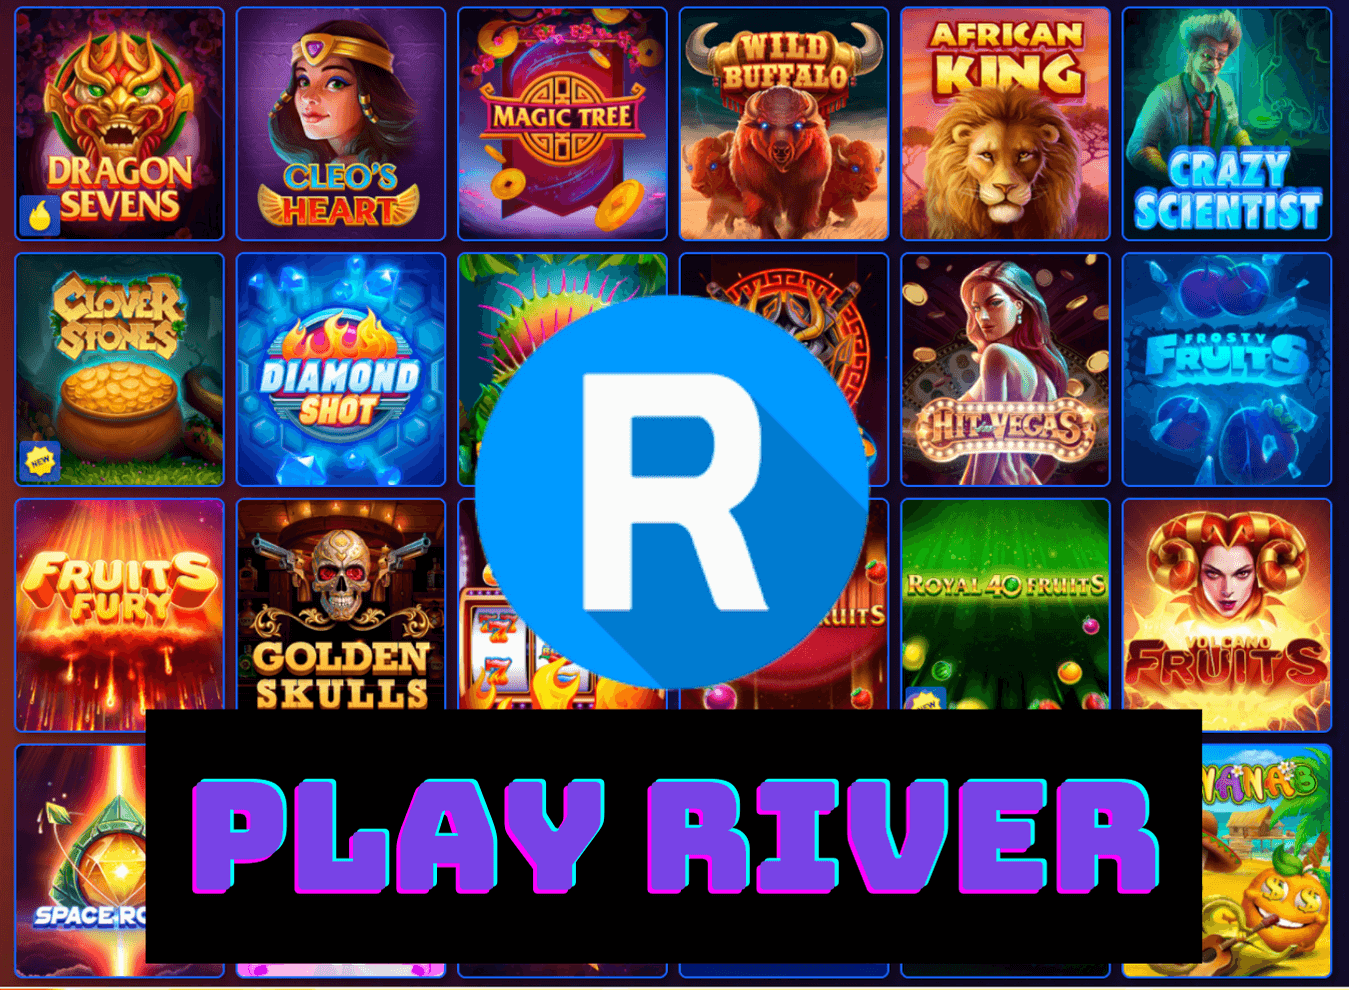 Play River Sweepstakes Online